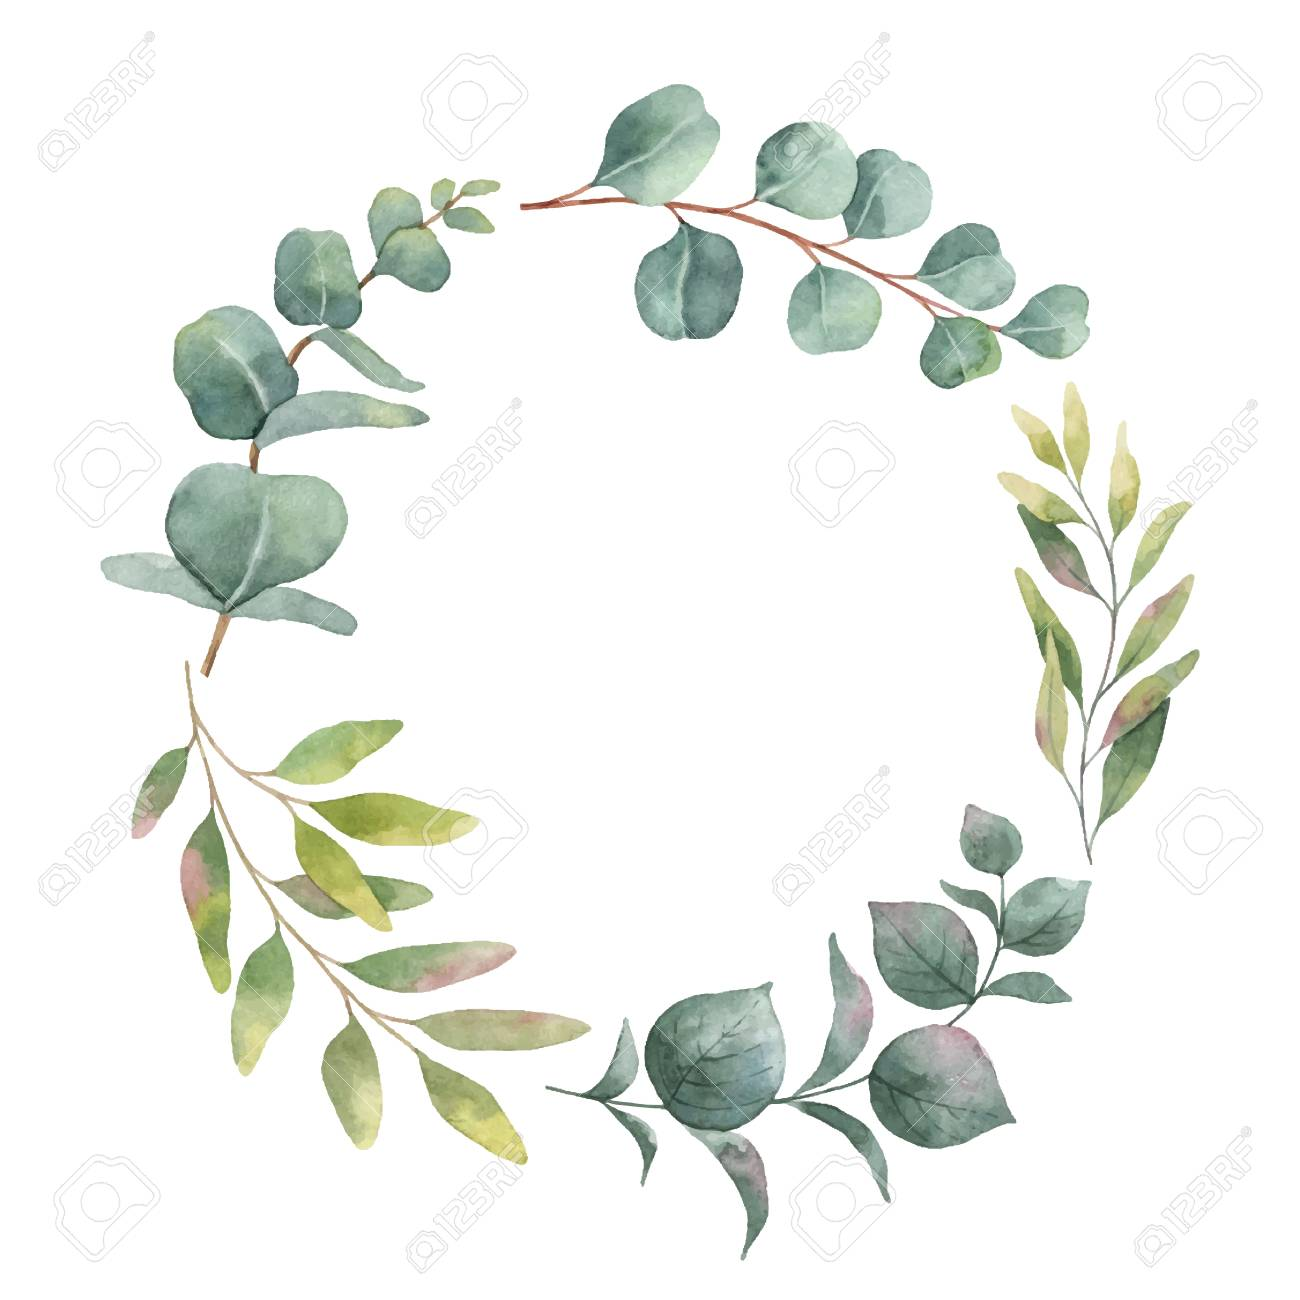 Watercolor vector wreath with green eucalyptus leaves and branches. Spring or summer flowers for invitation, wedding or greeting cards. - 92659346